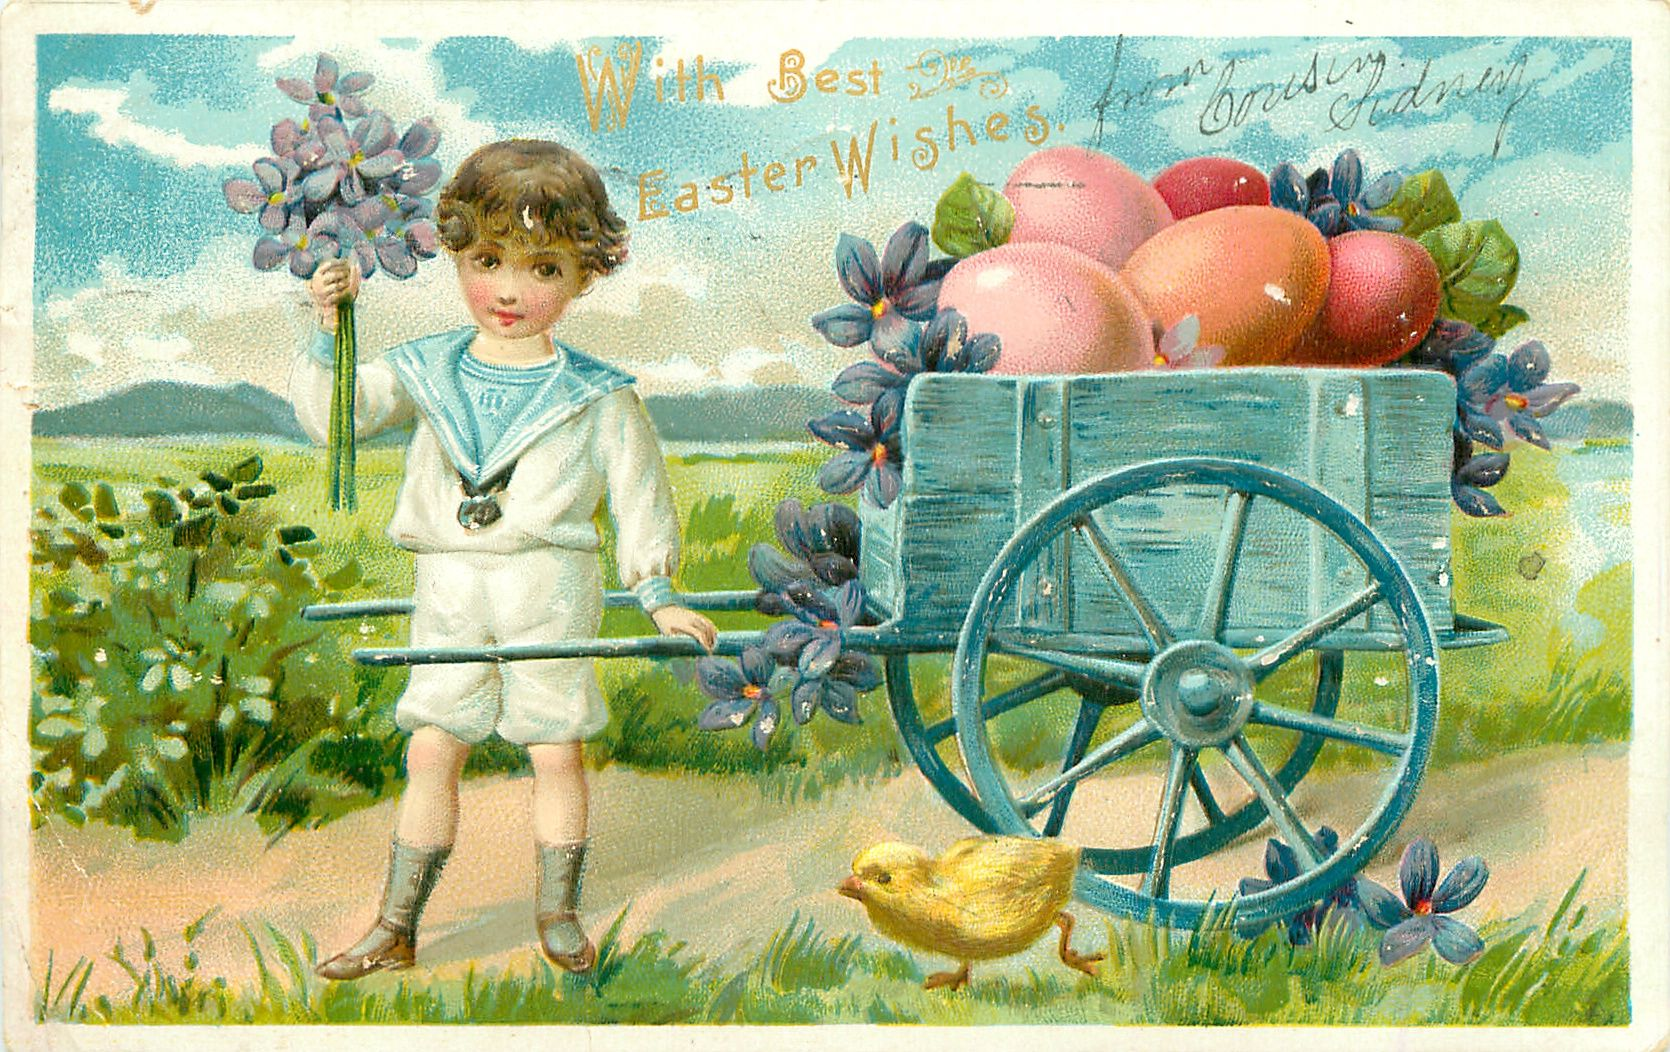 Old Easter Post Card — Wish Best Easter Wishes, 1907 (1670